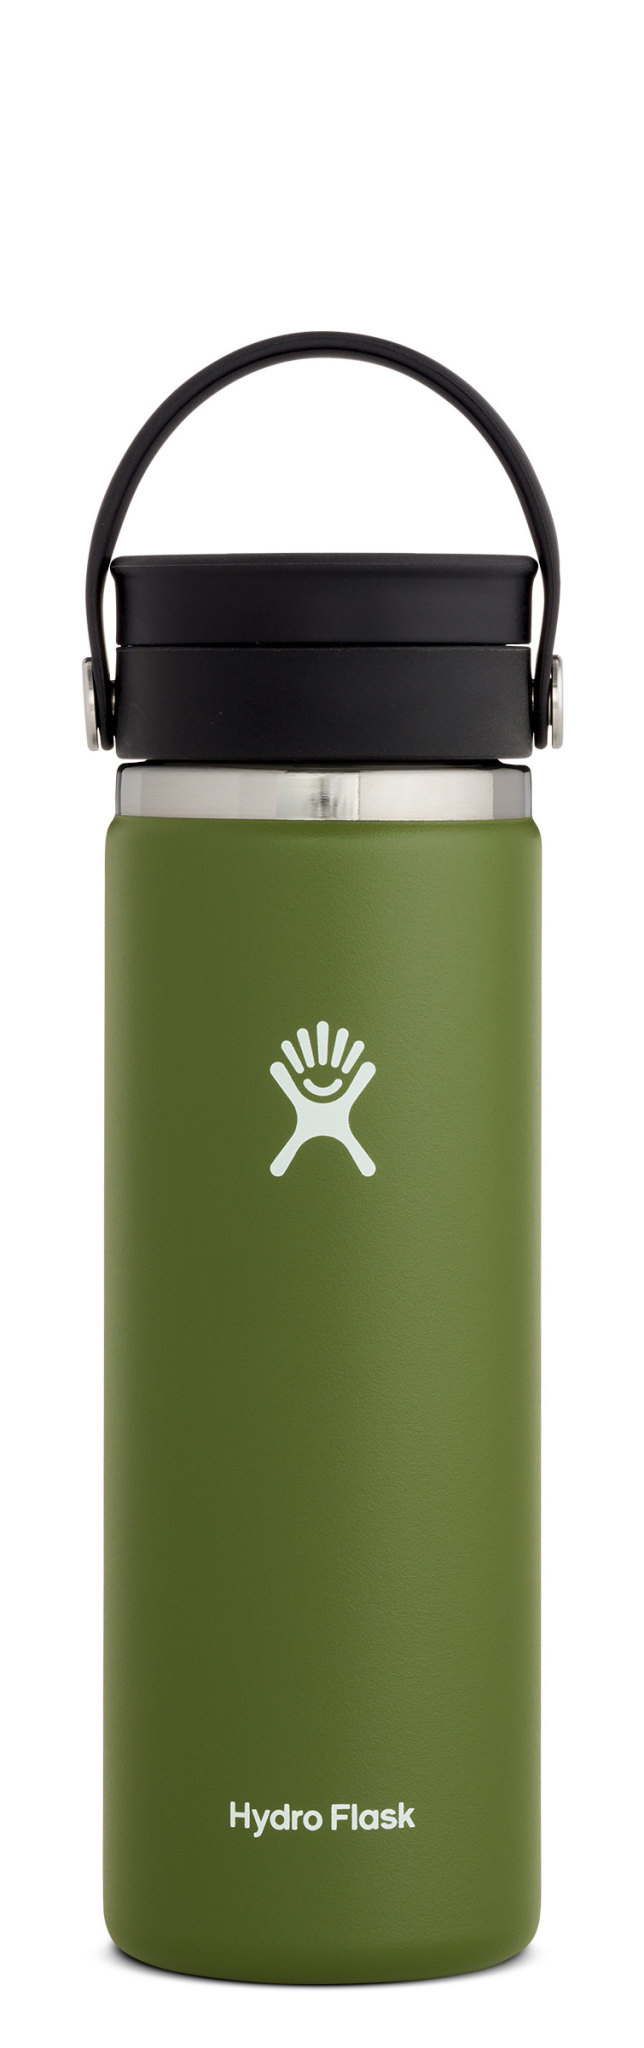 Hydro Flask 20oz Wide Mouth with Flex Sip Lid-3